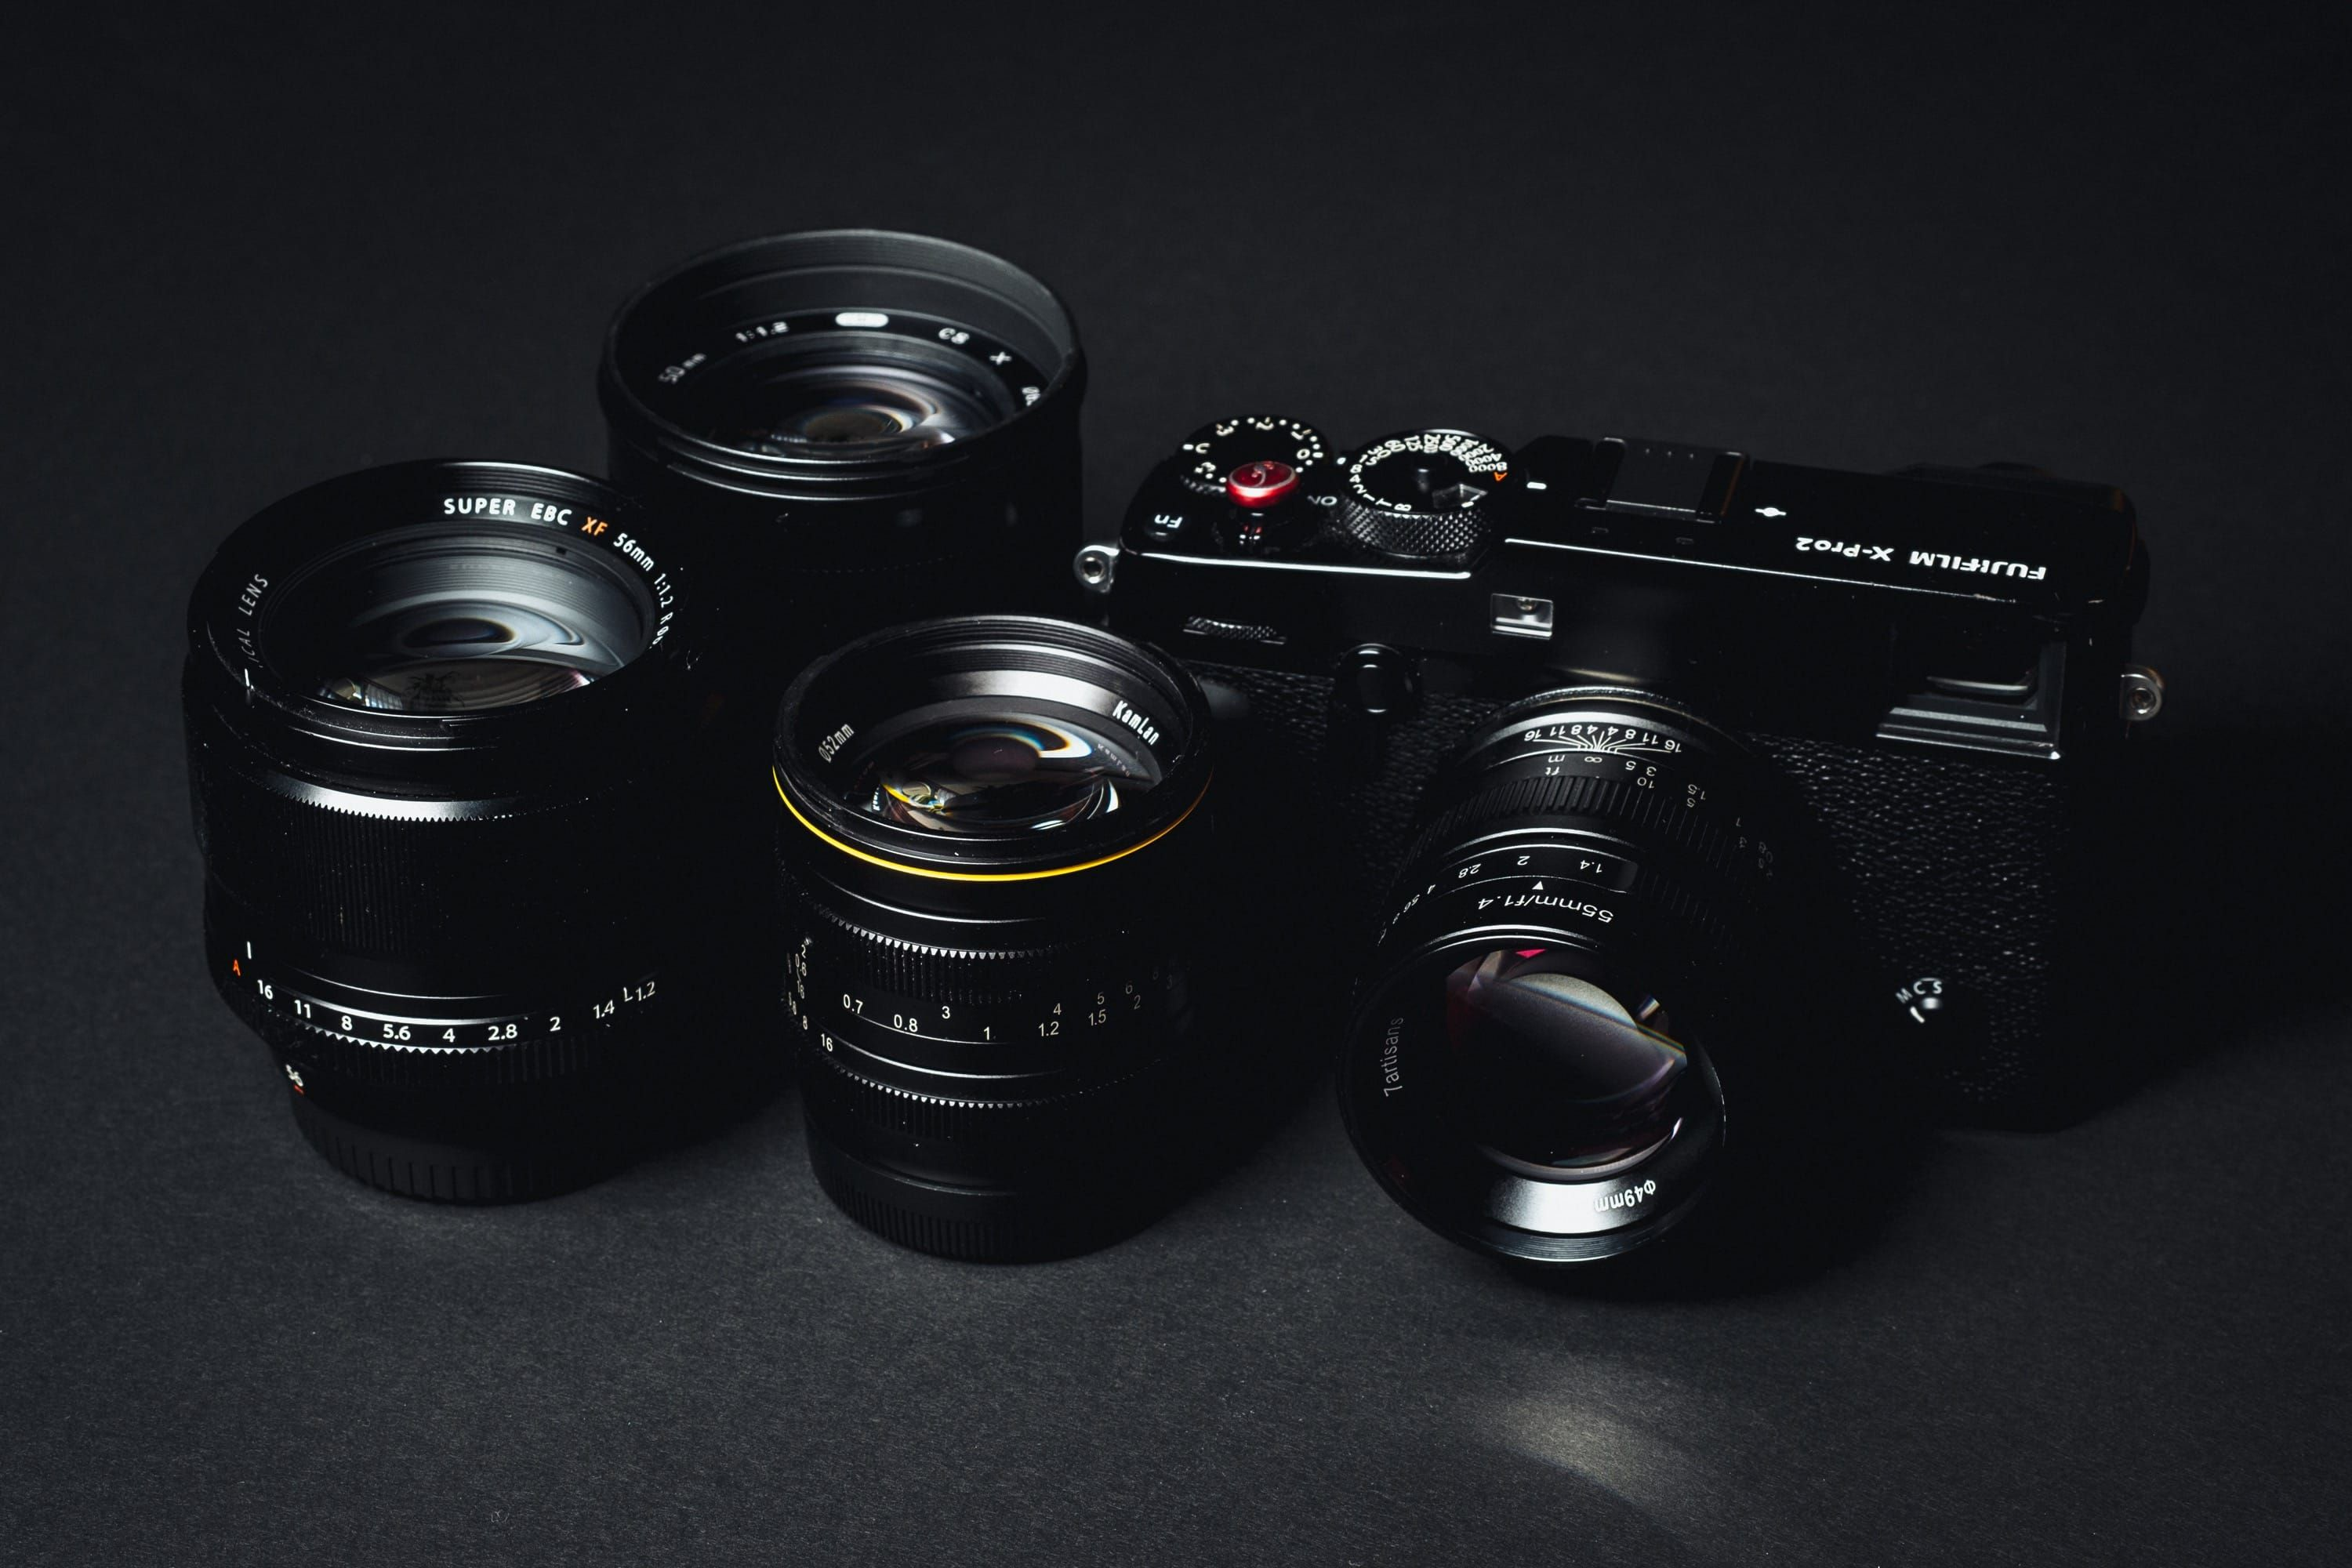 Kamlan 50mm f1 1 vs 7Artisans 55mm f1 4 | Lens Reviews | Lens